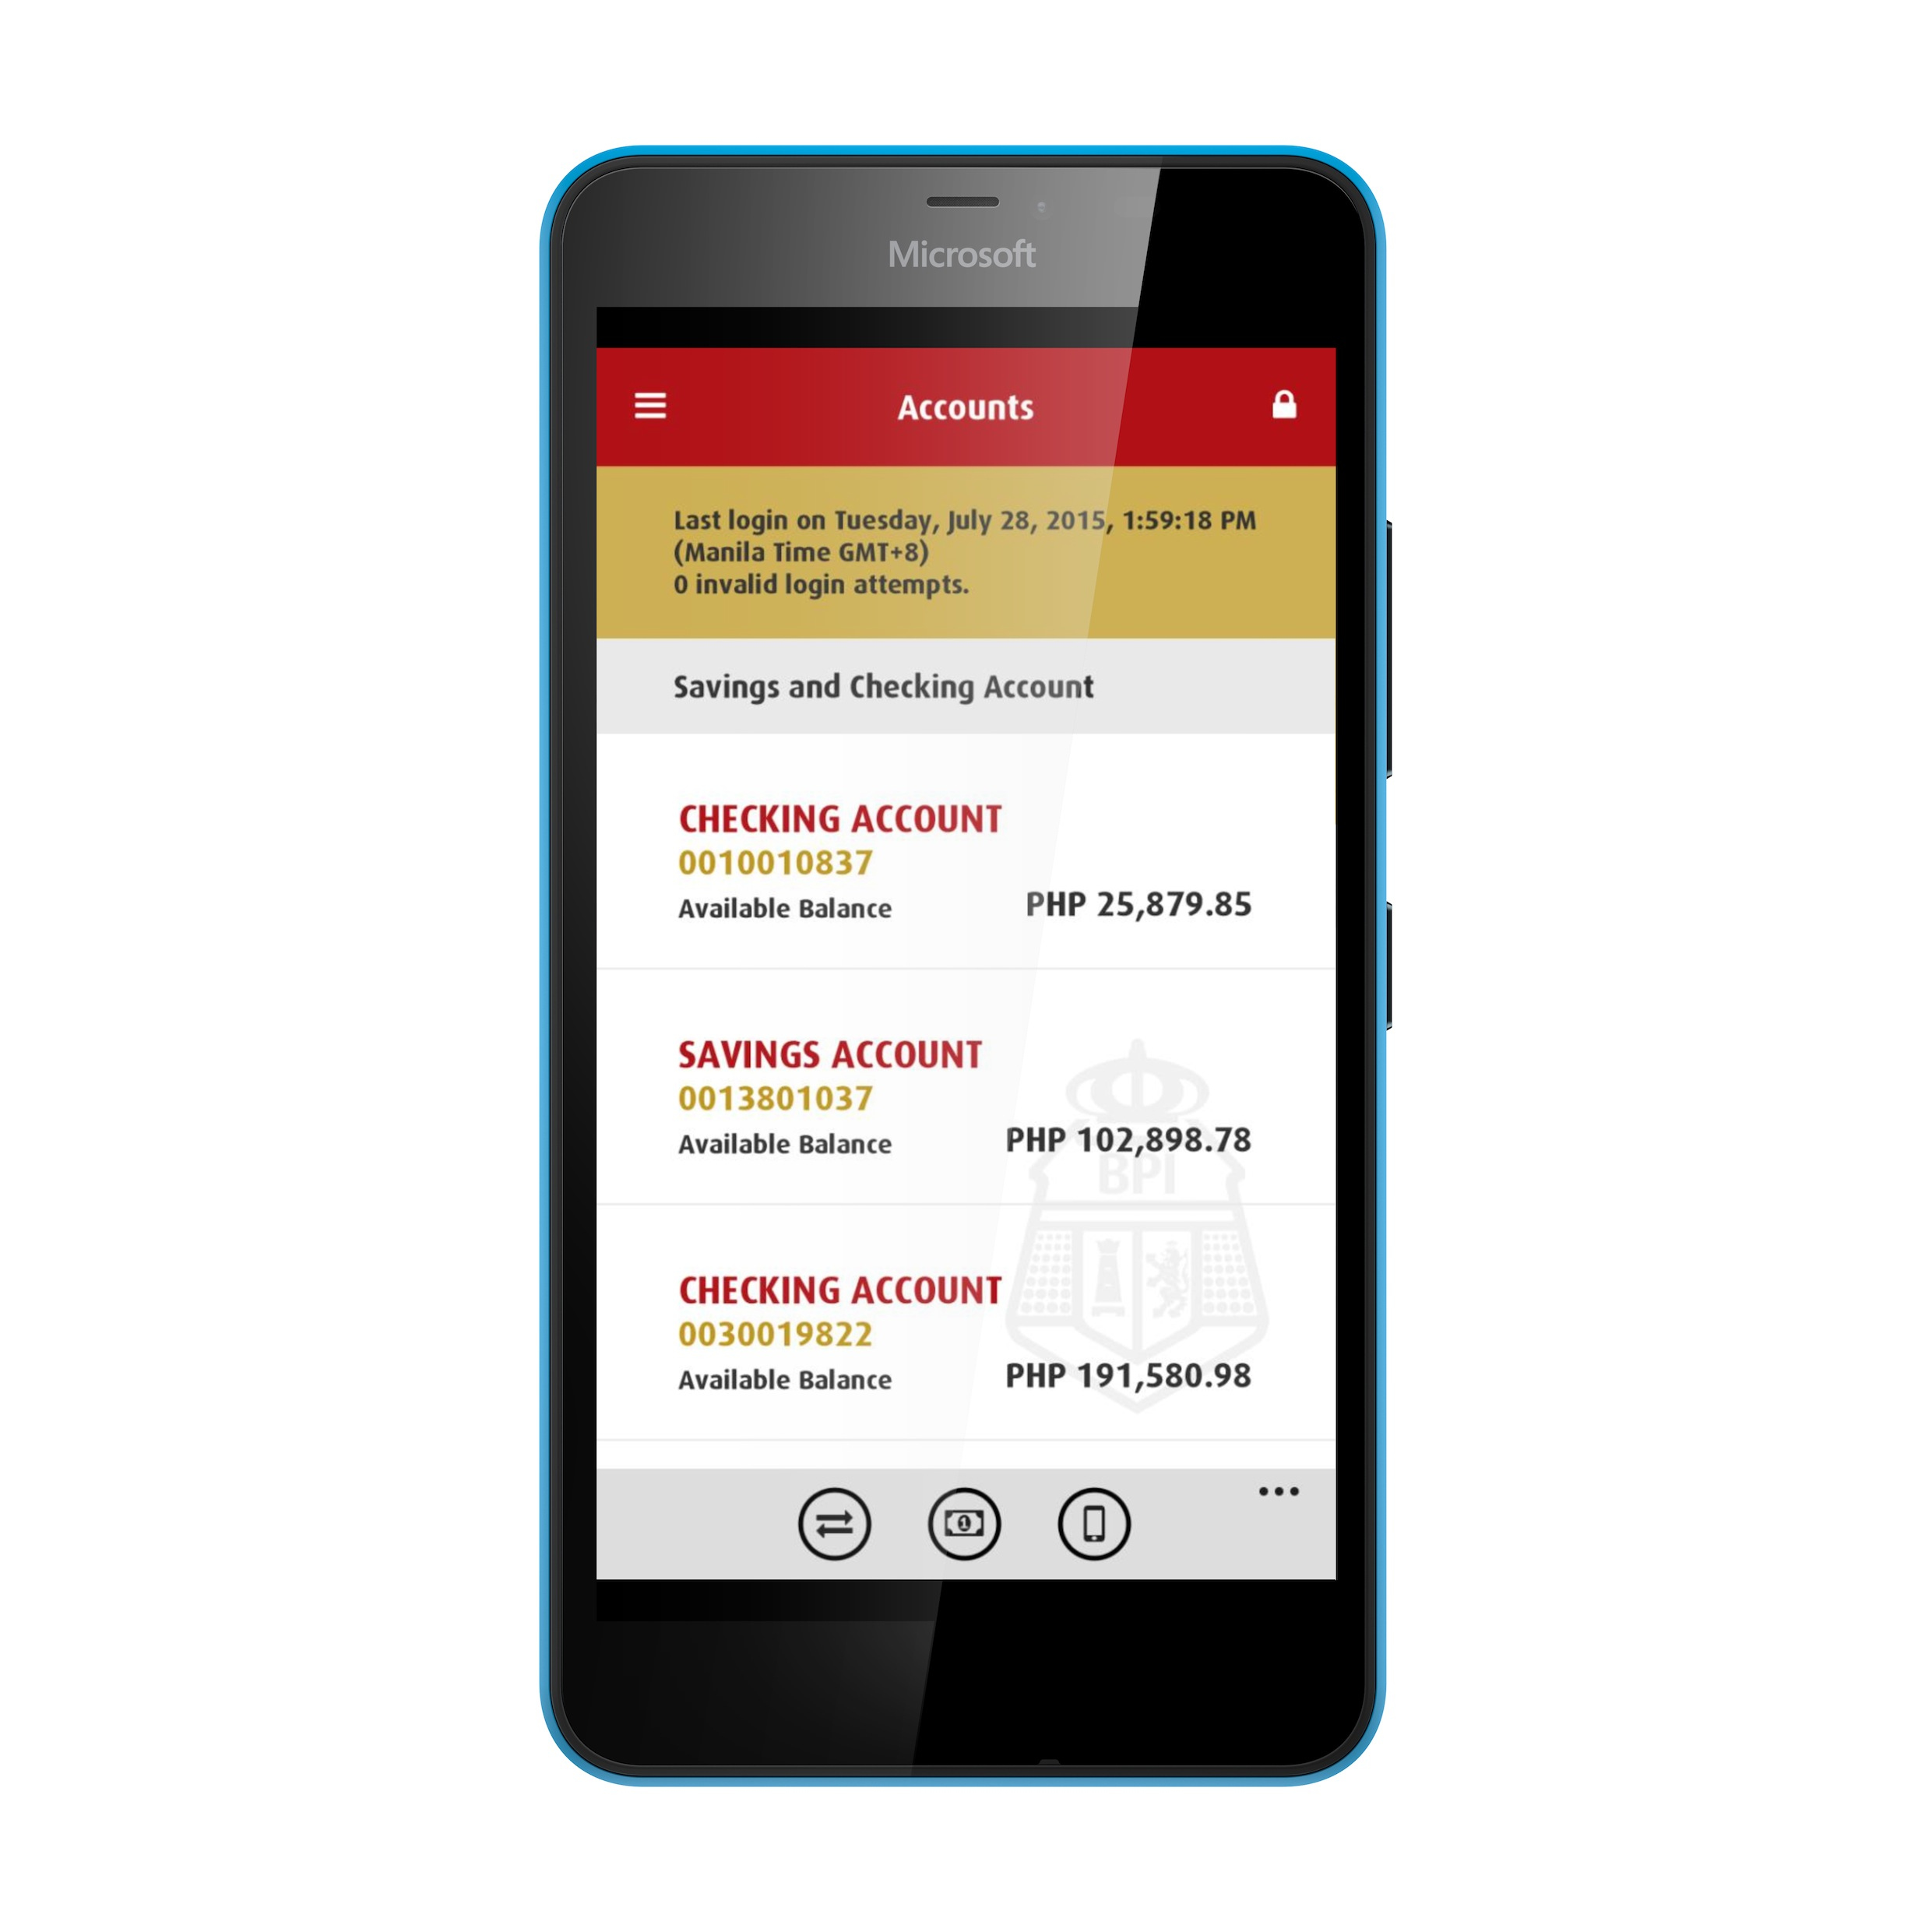 BPI introduces mobile banking app for Windows – Upgrade ...